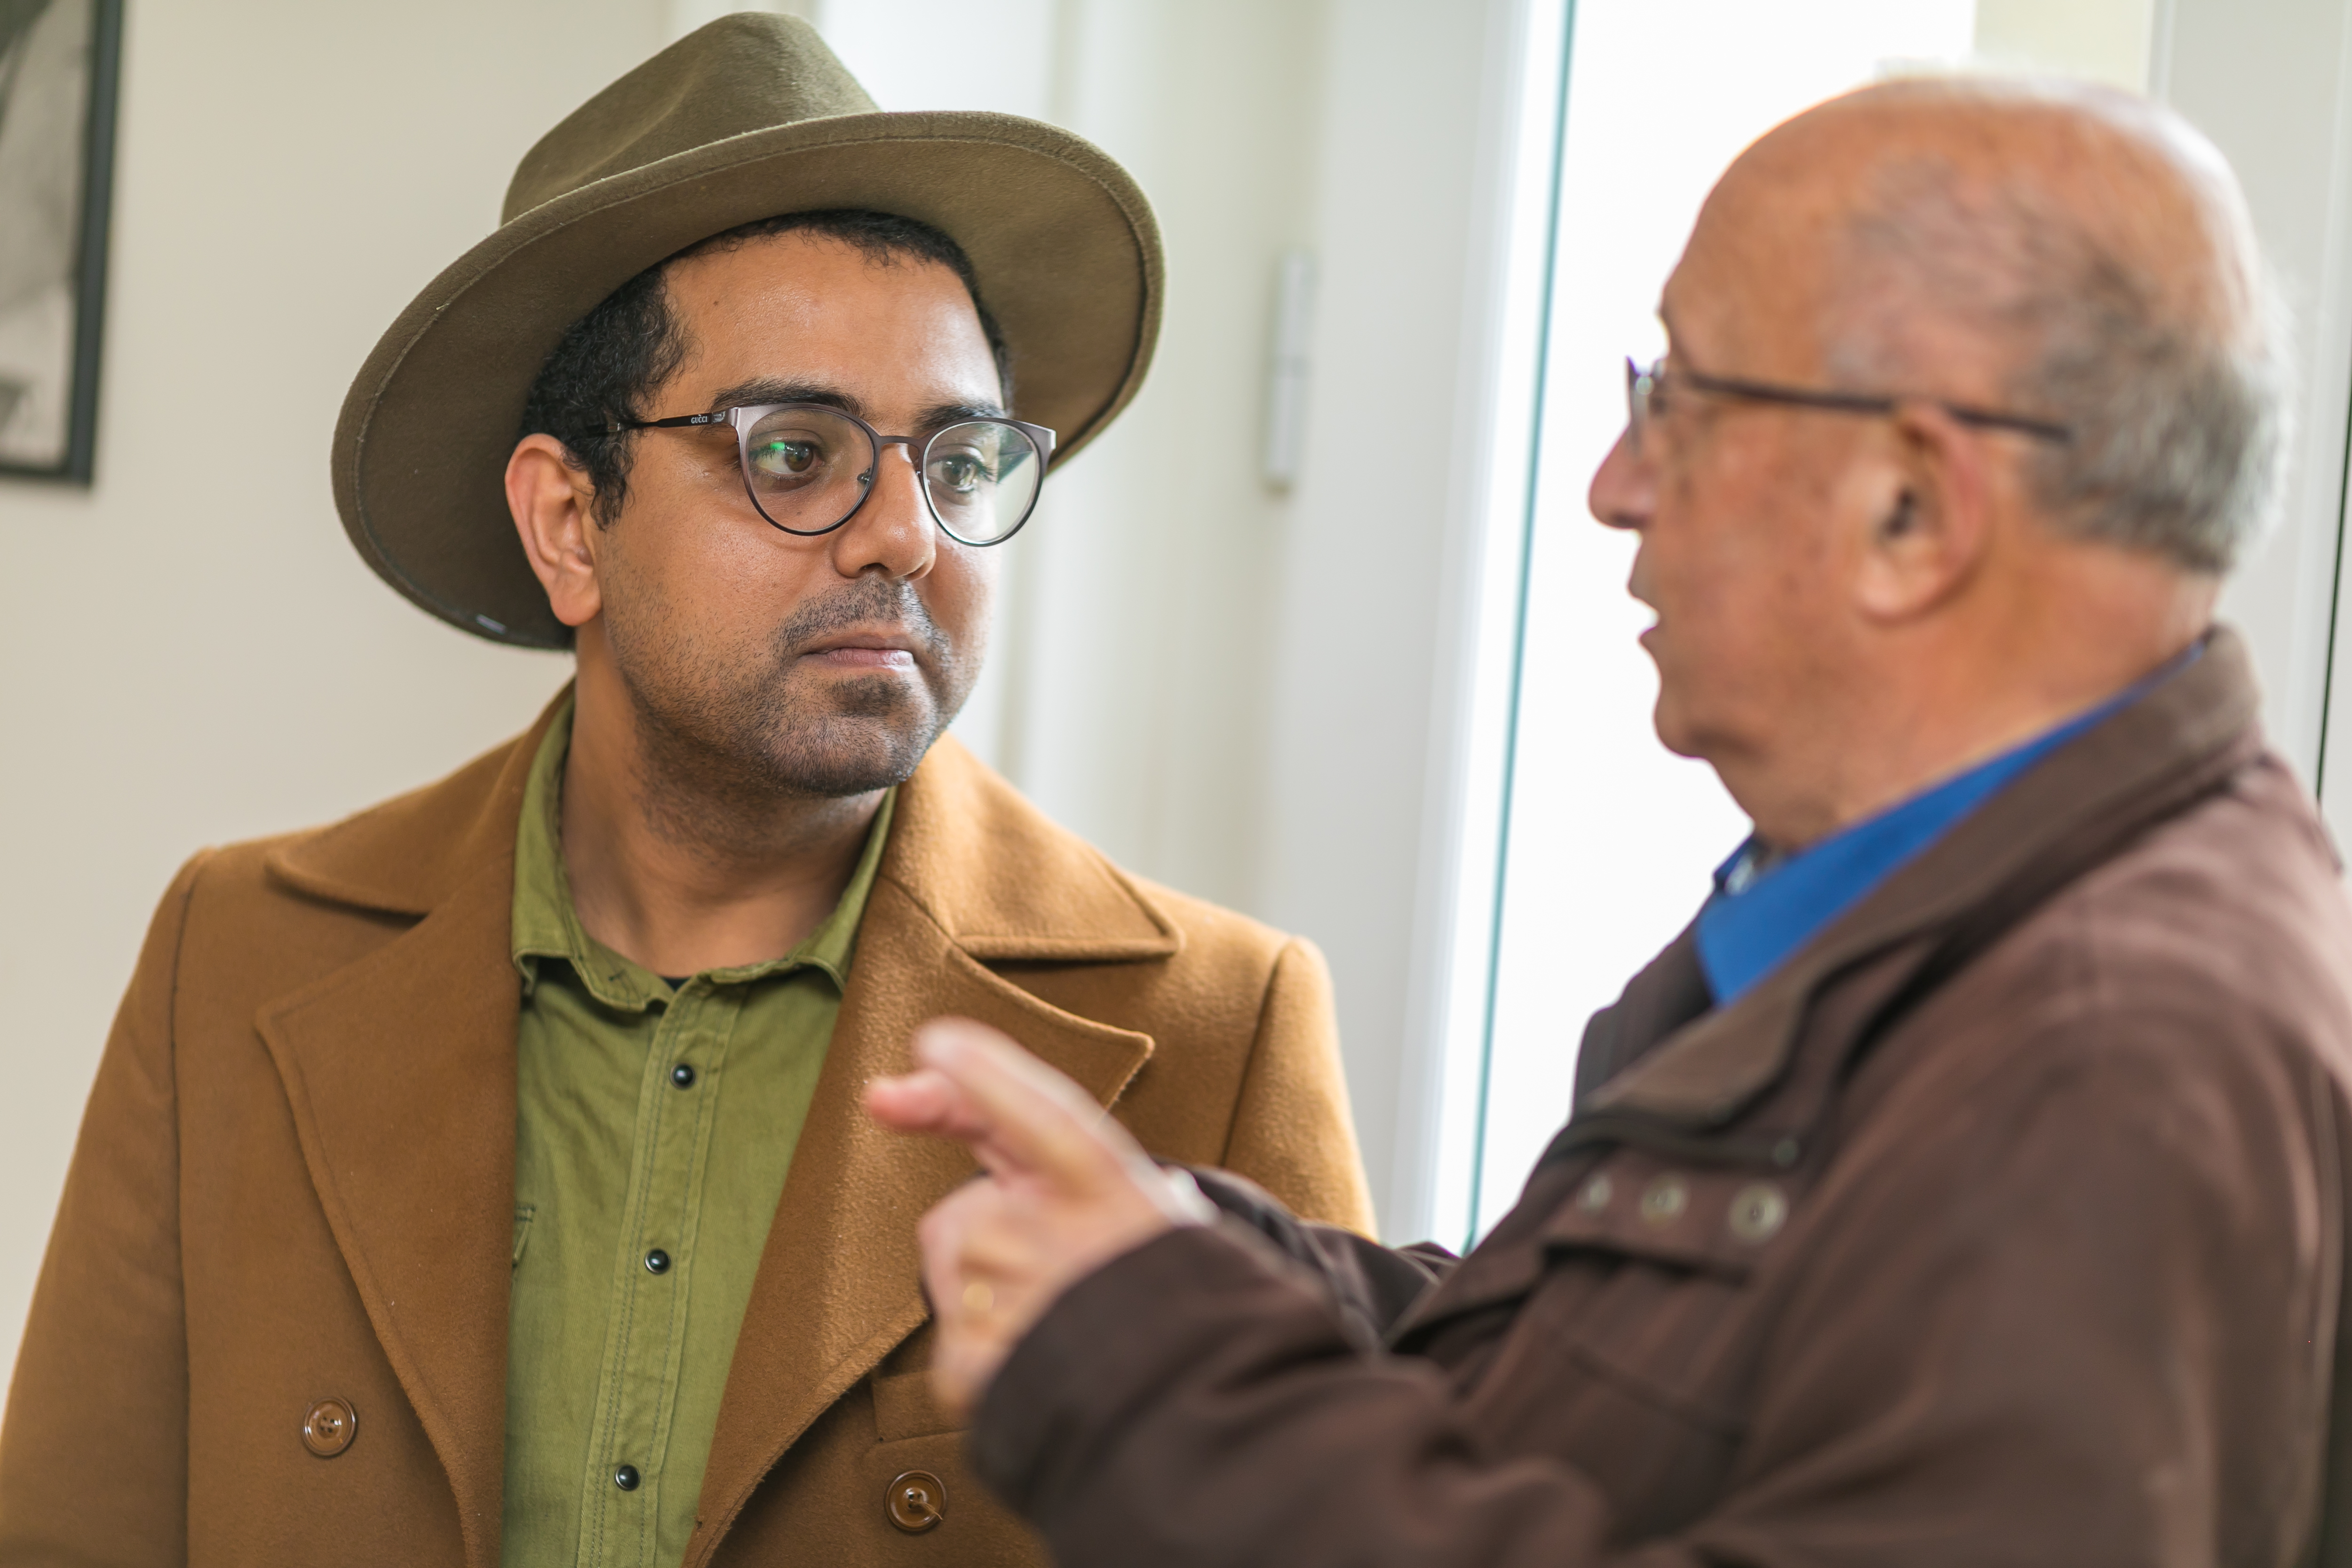 Mr. Mohammad Bamm, ICORN writer in residence in Poitiers from January 2019, together with Roland Sérazin, grandson of Jean-Richard Bloch, during the inauguration of the Villa Bloch on 9 February 2019. ©iBooCréation, Ville de Poitiers. Photo.